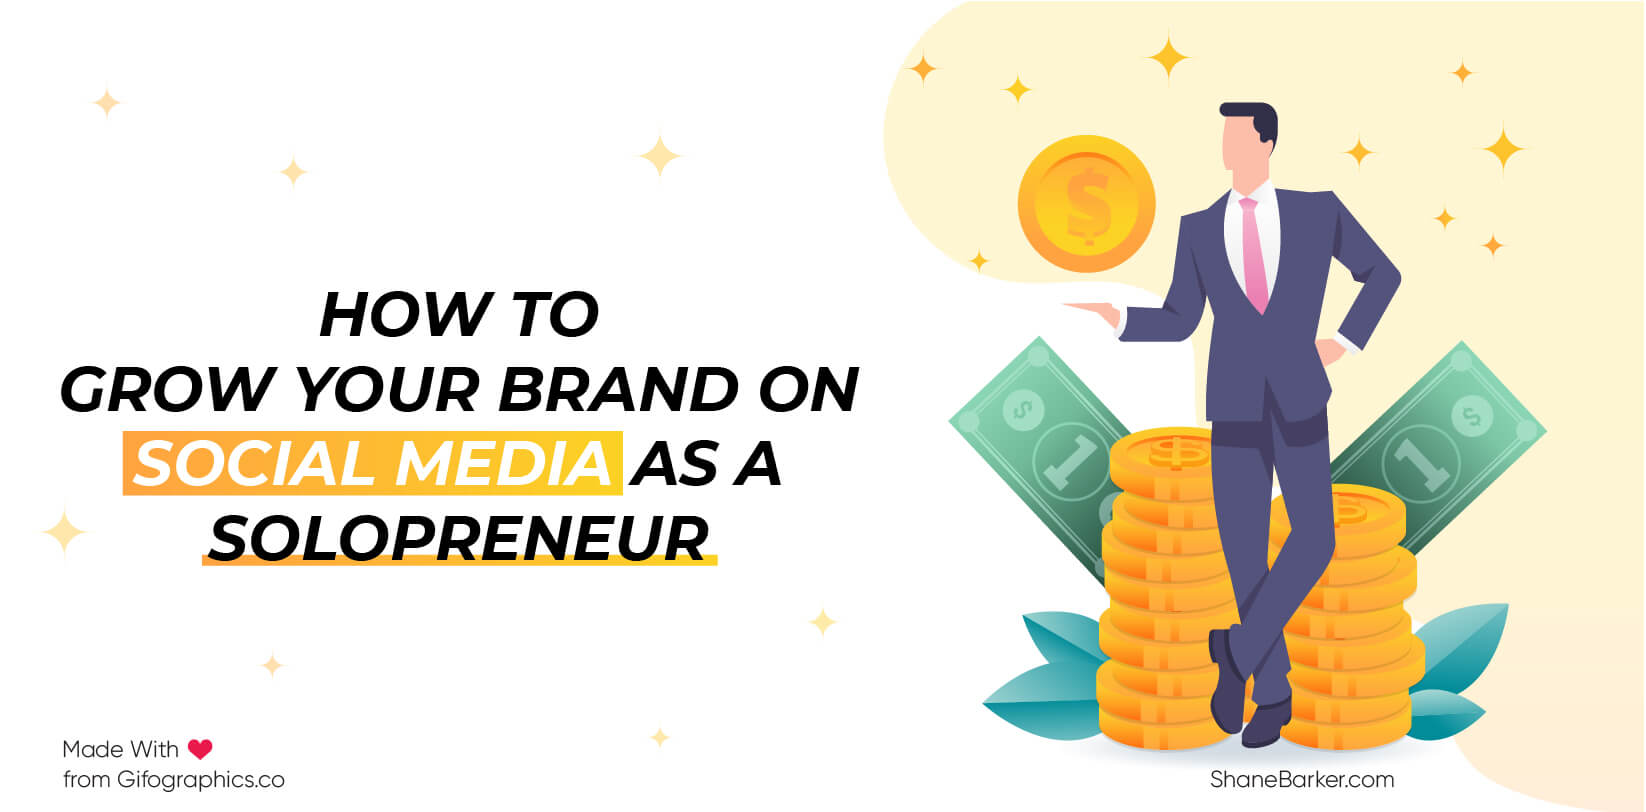 How to Grow Your Brand on Social Media as a Solopreneur